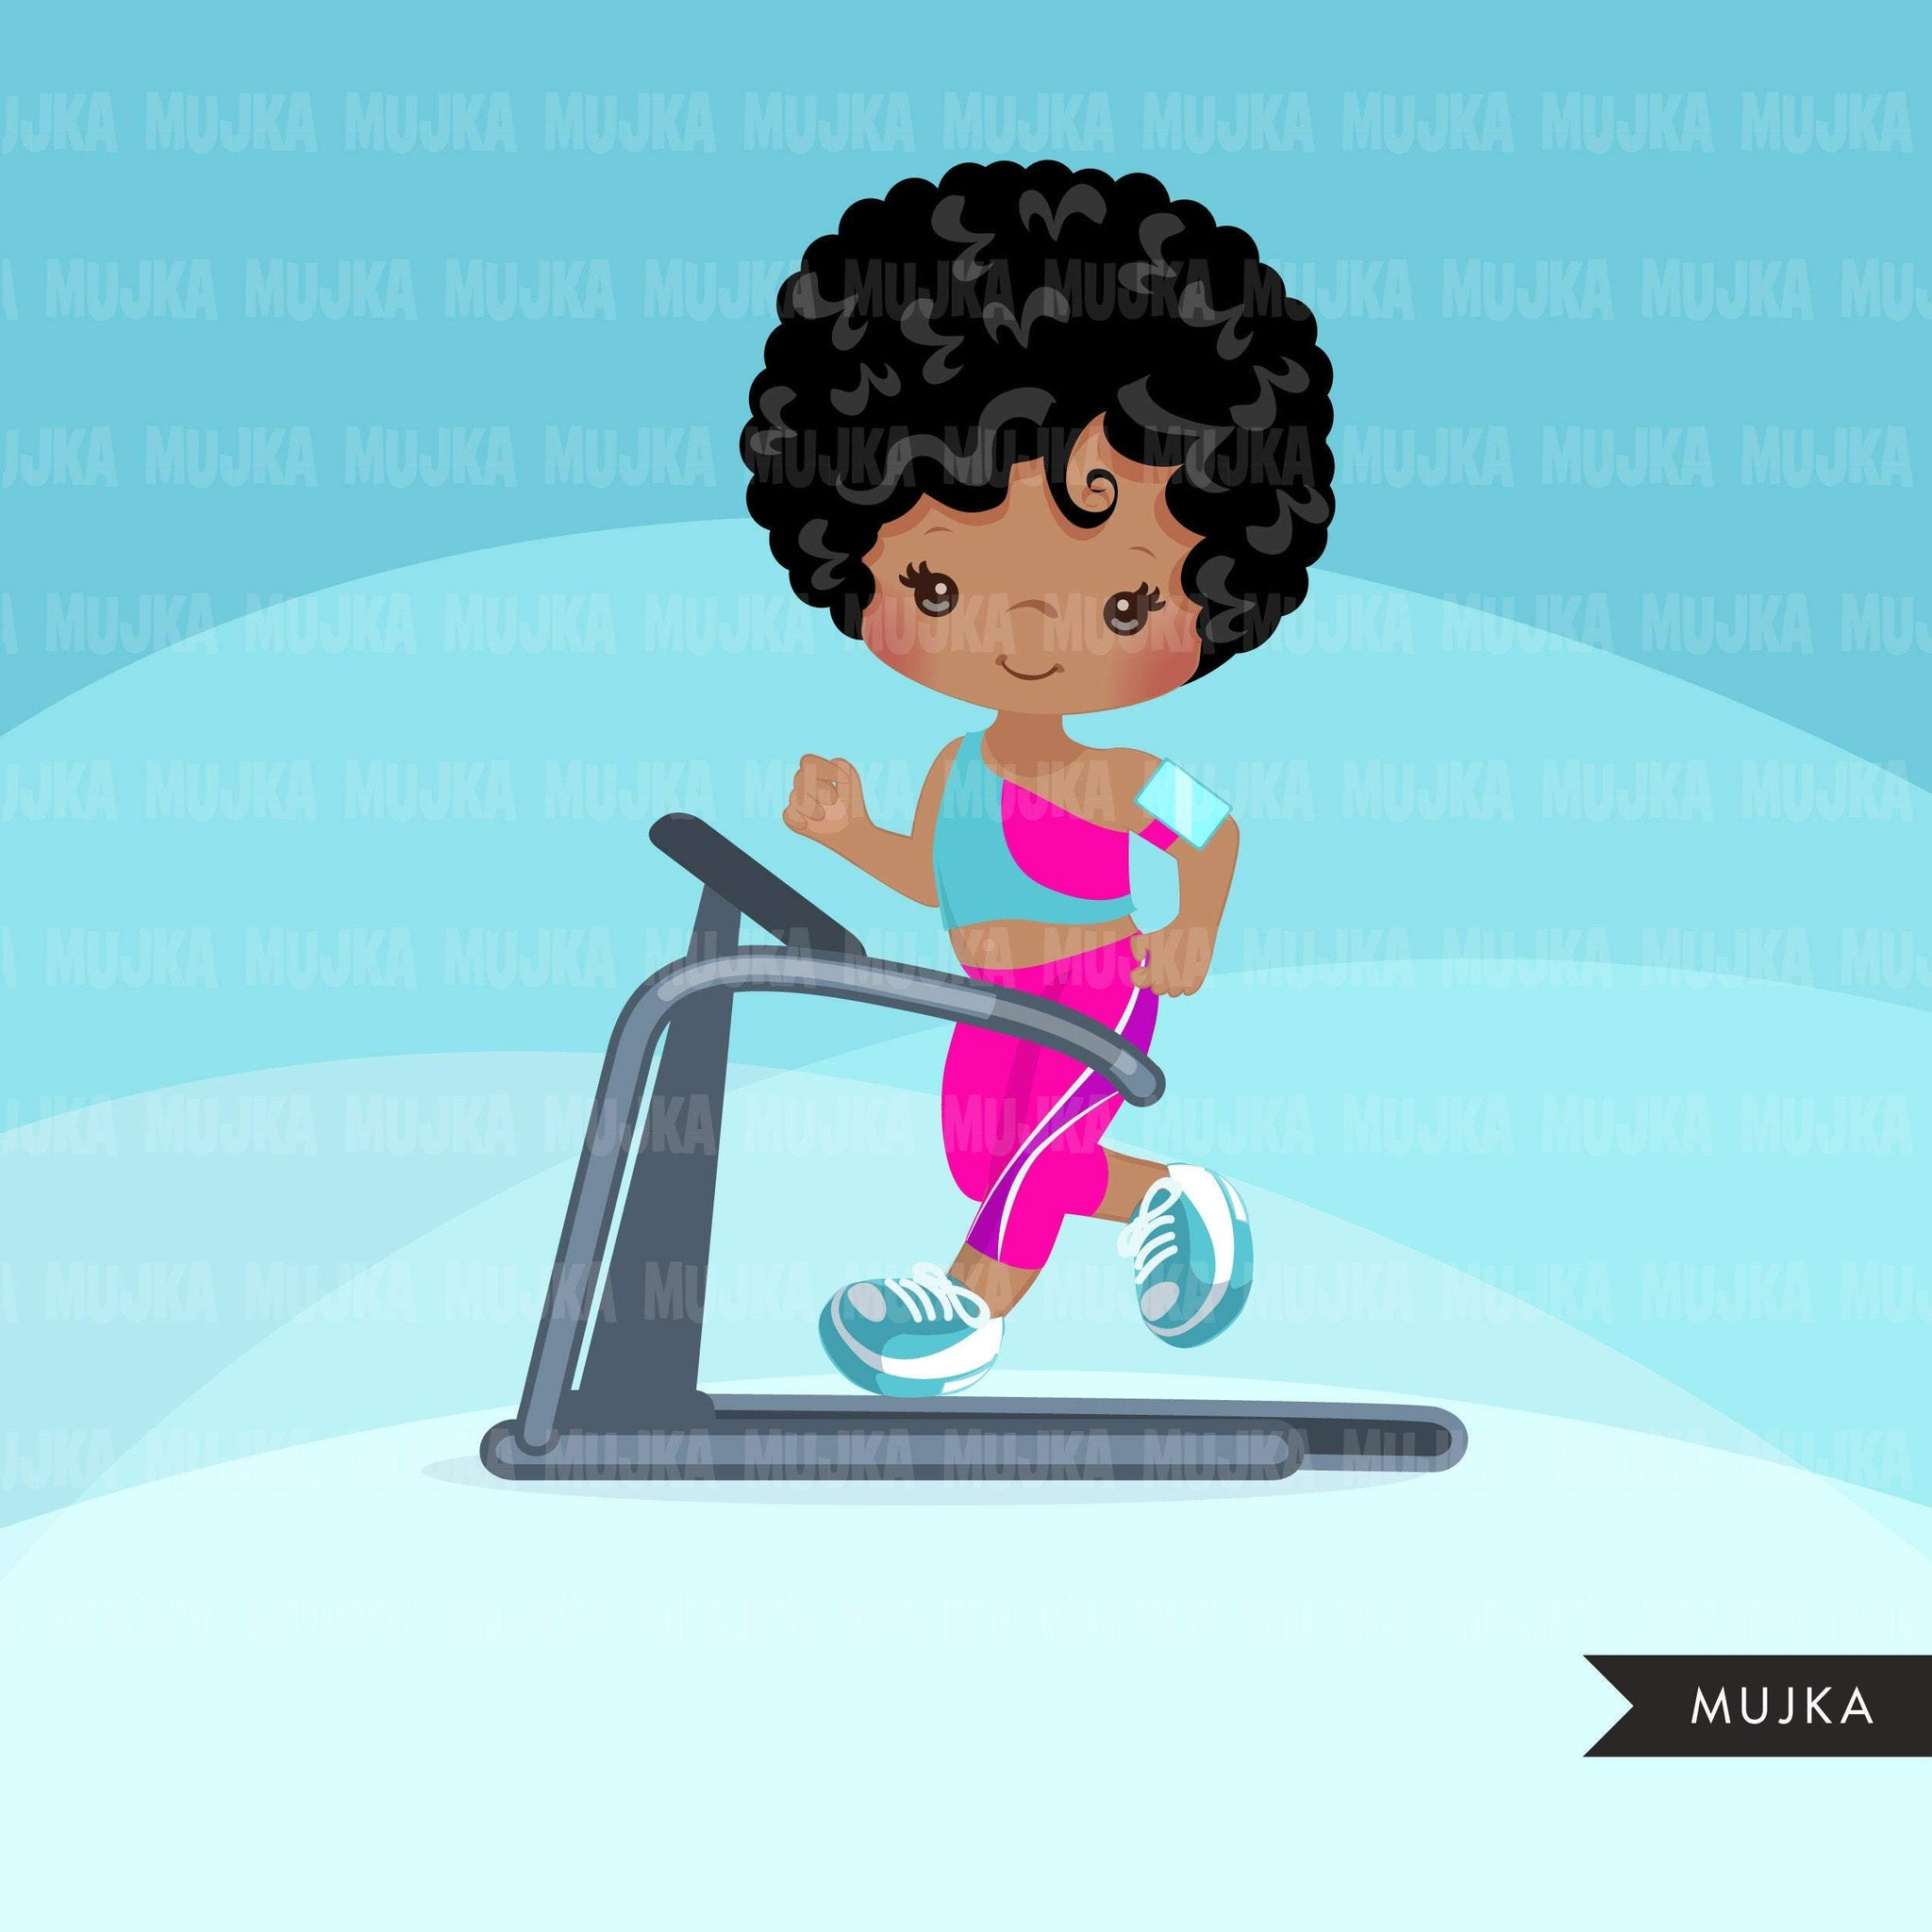 Fitness Clipart, black girls running on treadmill, workout, sports, school activity, commercial use PNG graphics